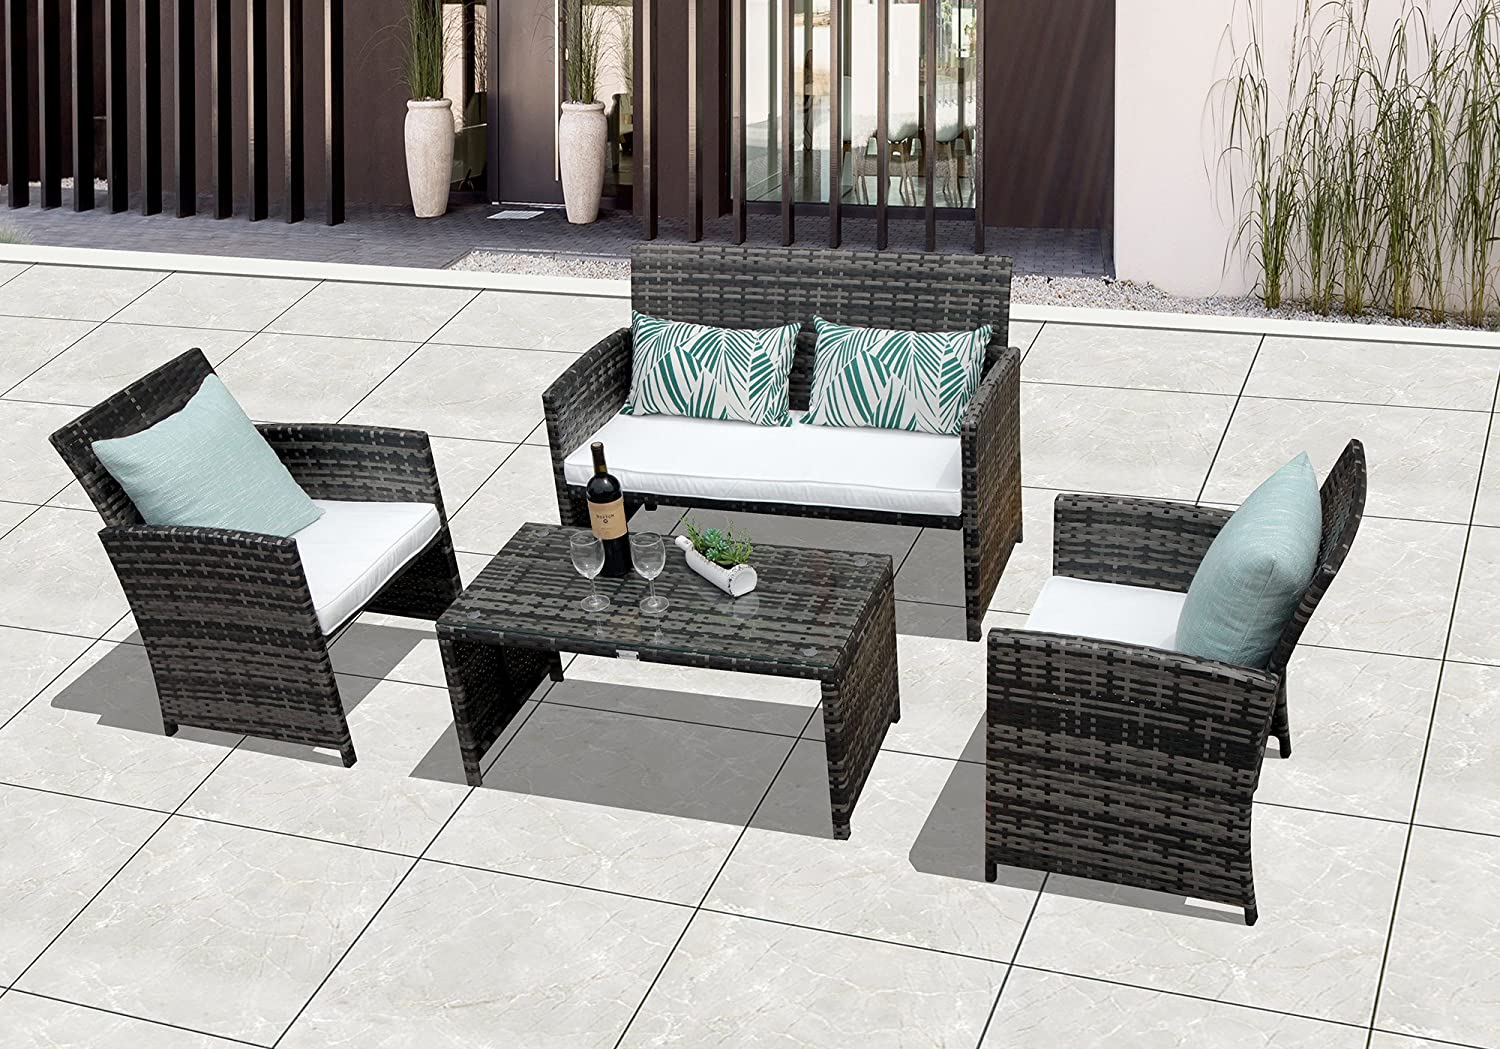 Gradient Brown Patiorama 4 Pieces Patio Loveseats Outdoor Furniture Sets with Seat Cushions Grey-4 Outdoor PE Wicker